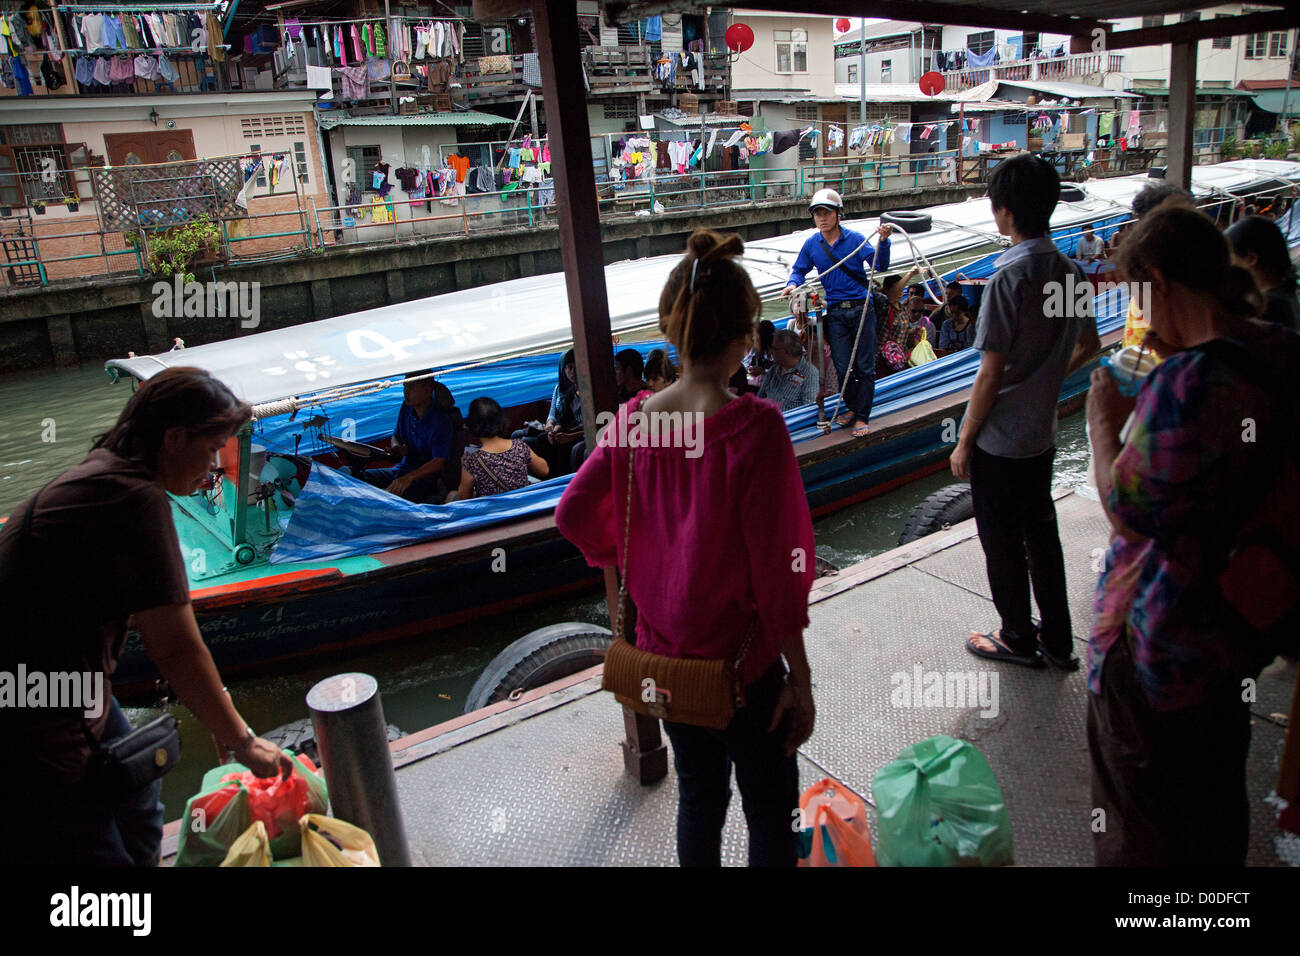 TAXI BOATS OR RIVER BUSSES ON A CANAL LINKED TO THE CHAO PHRAYA RIVER PUBLIC TRANSPORT IN THE CITY OF BANGKOK BANGKOK - Stock Image